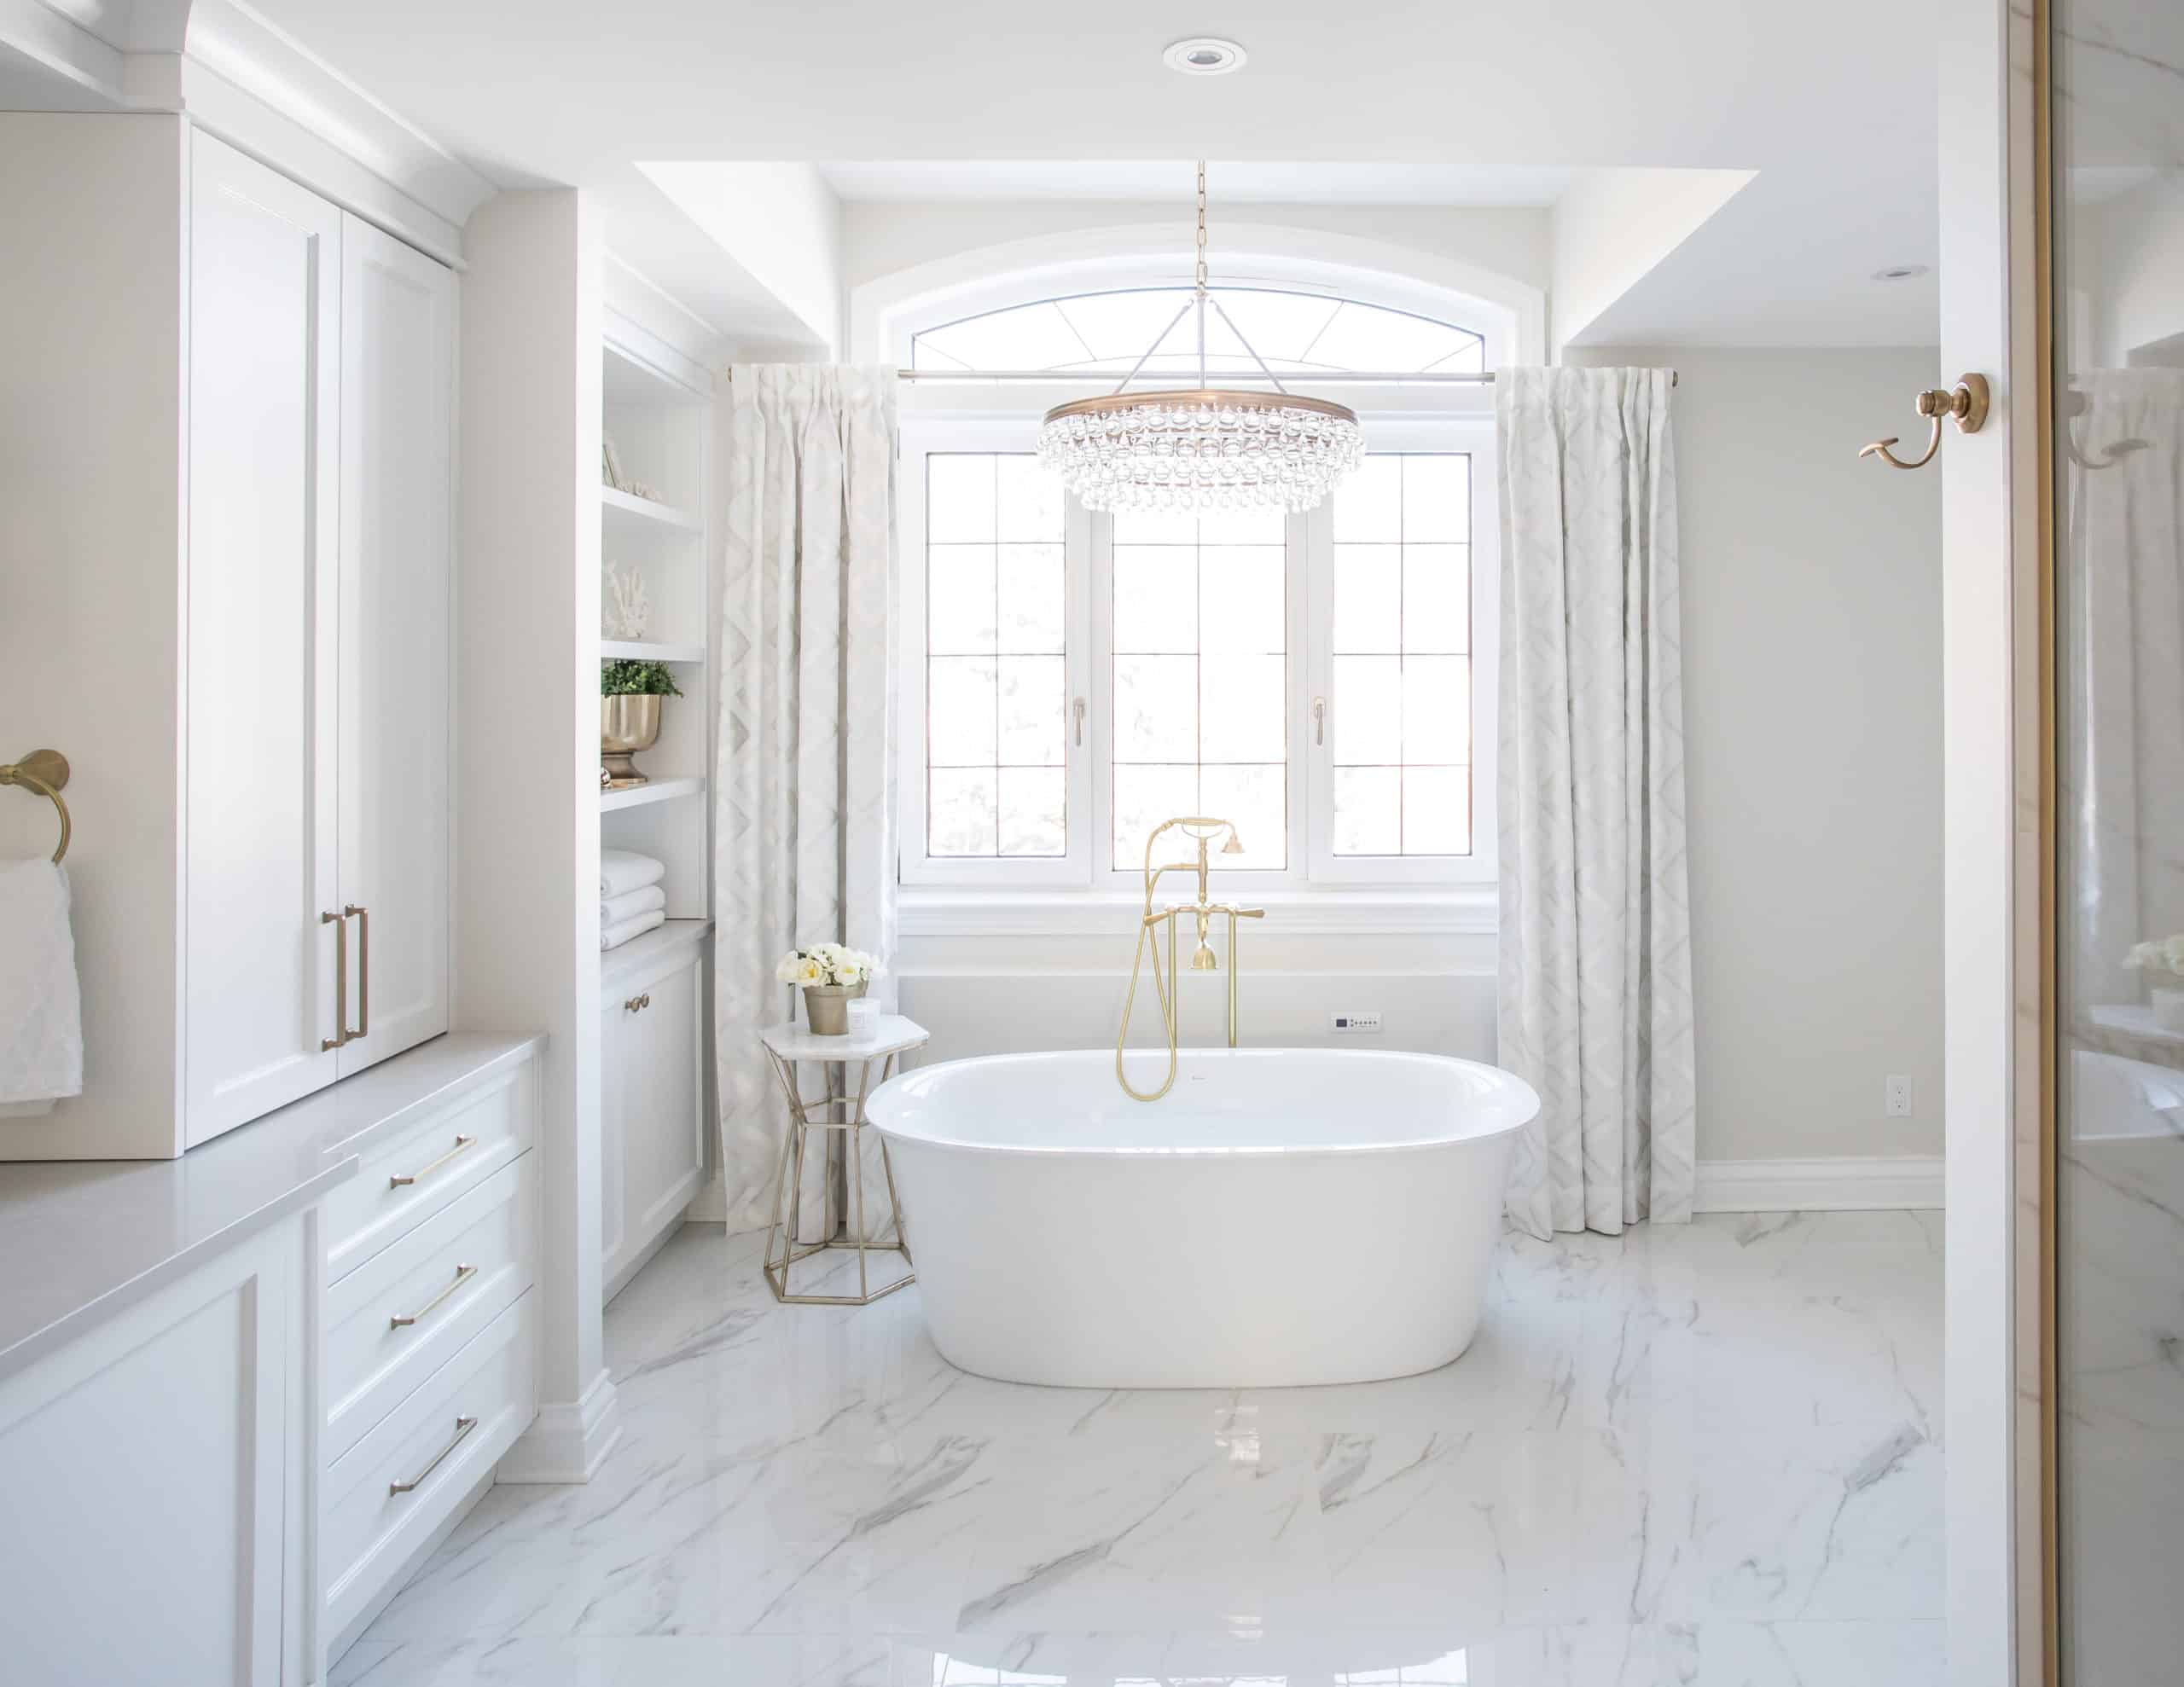 Soaker tub with a golden faucet